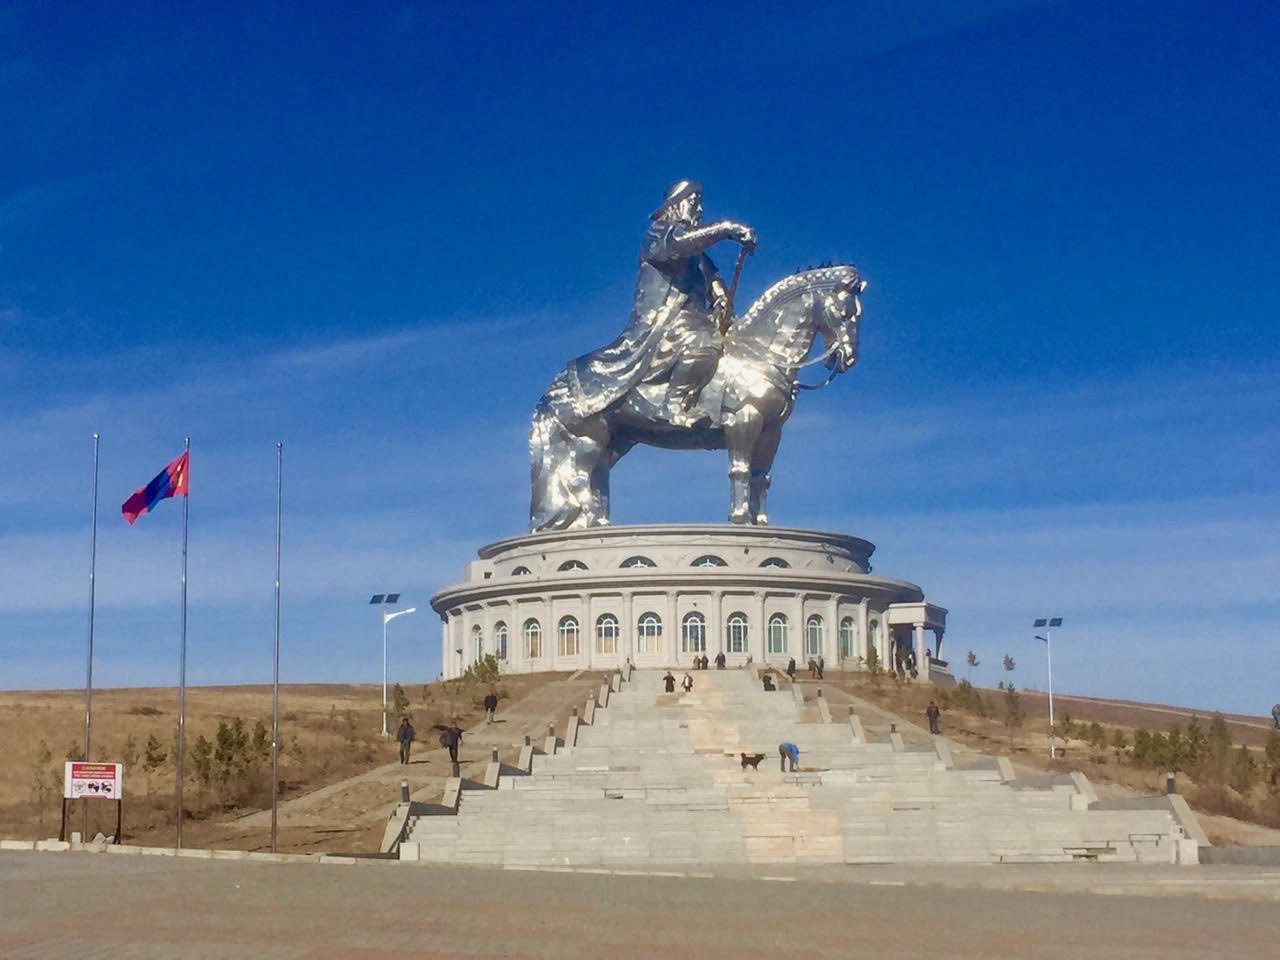 genghis khan statue--further with steps.jpg